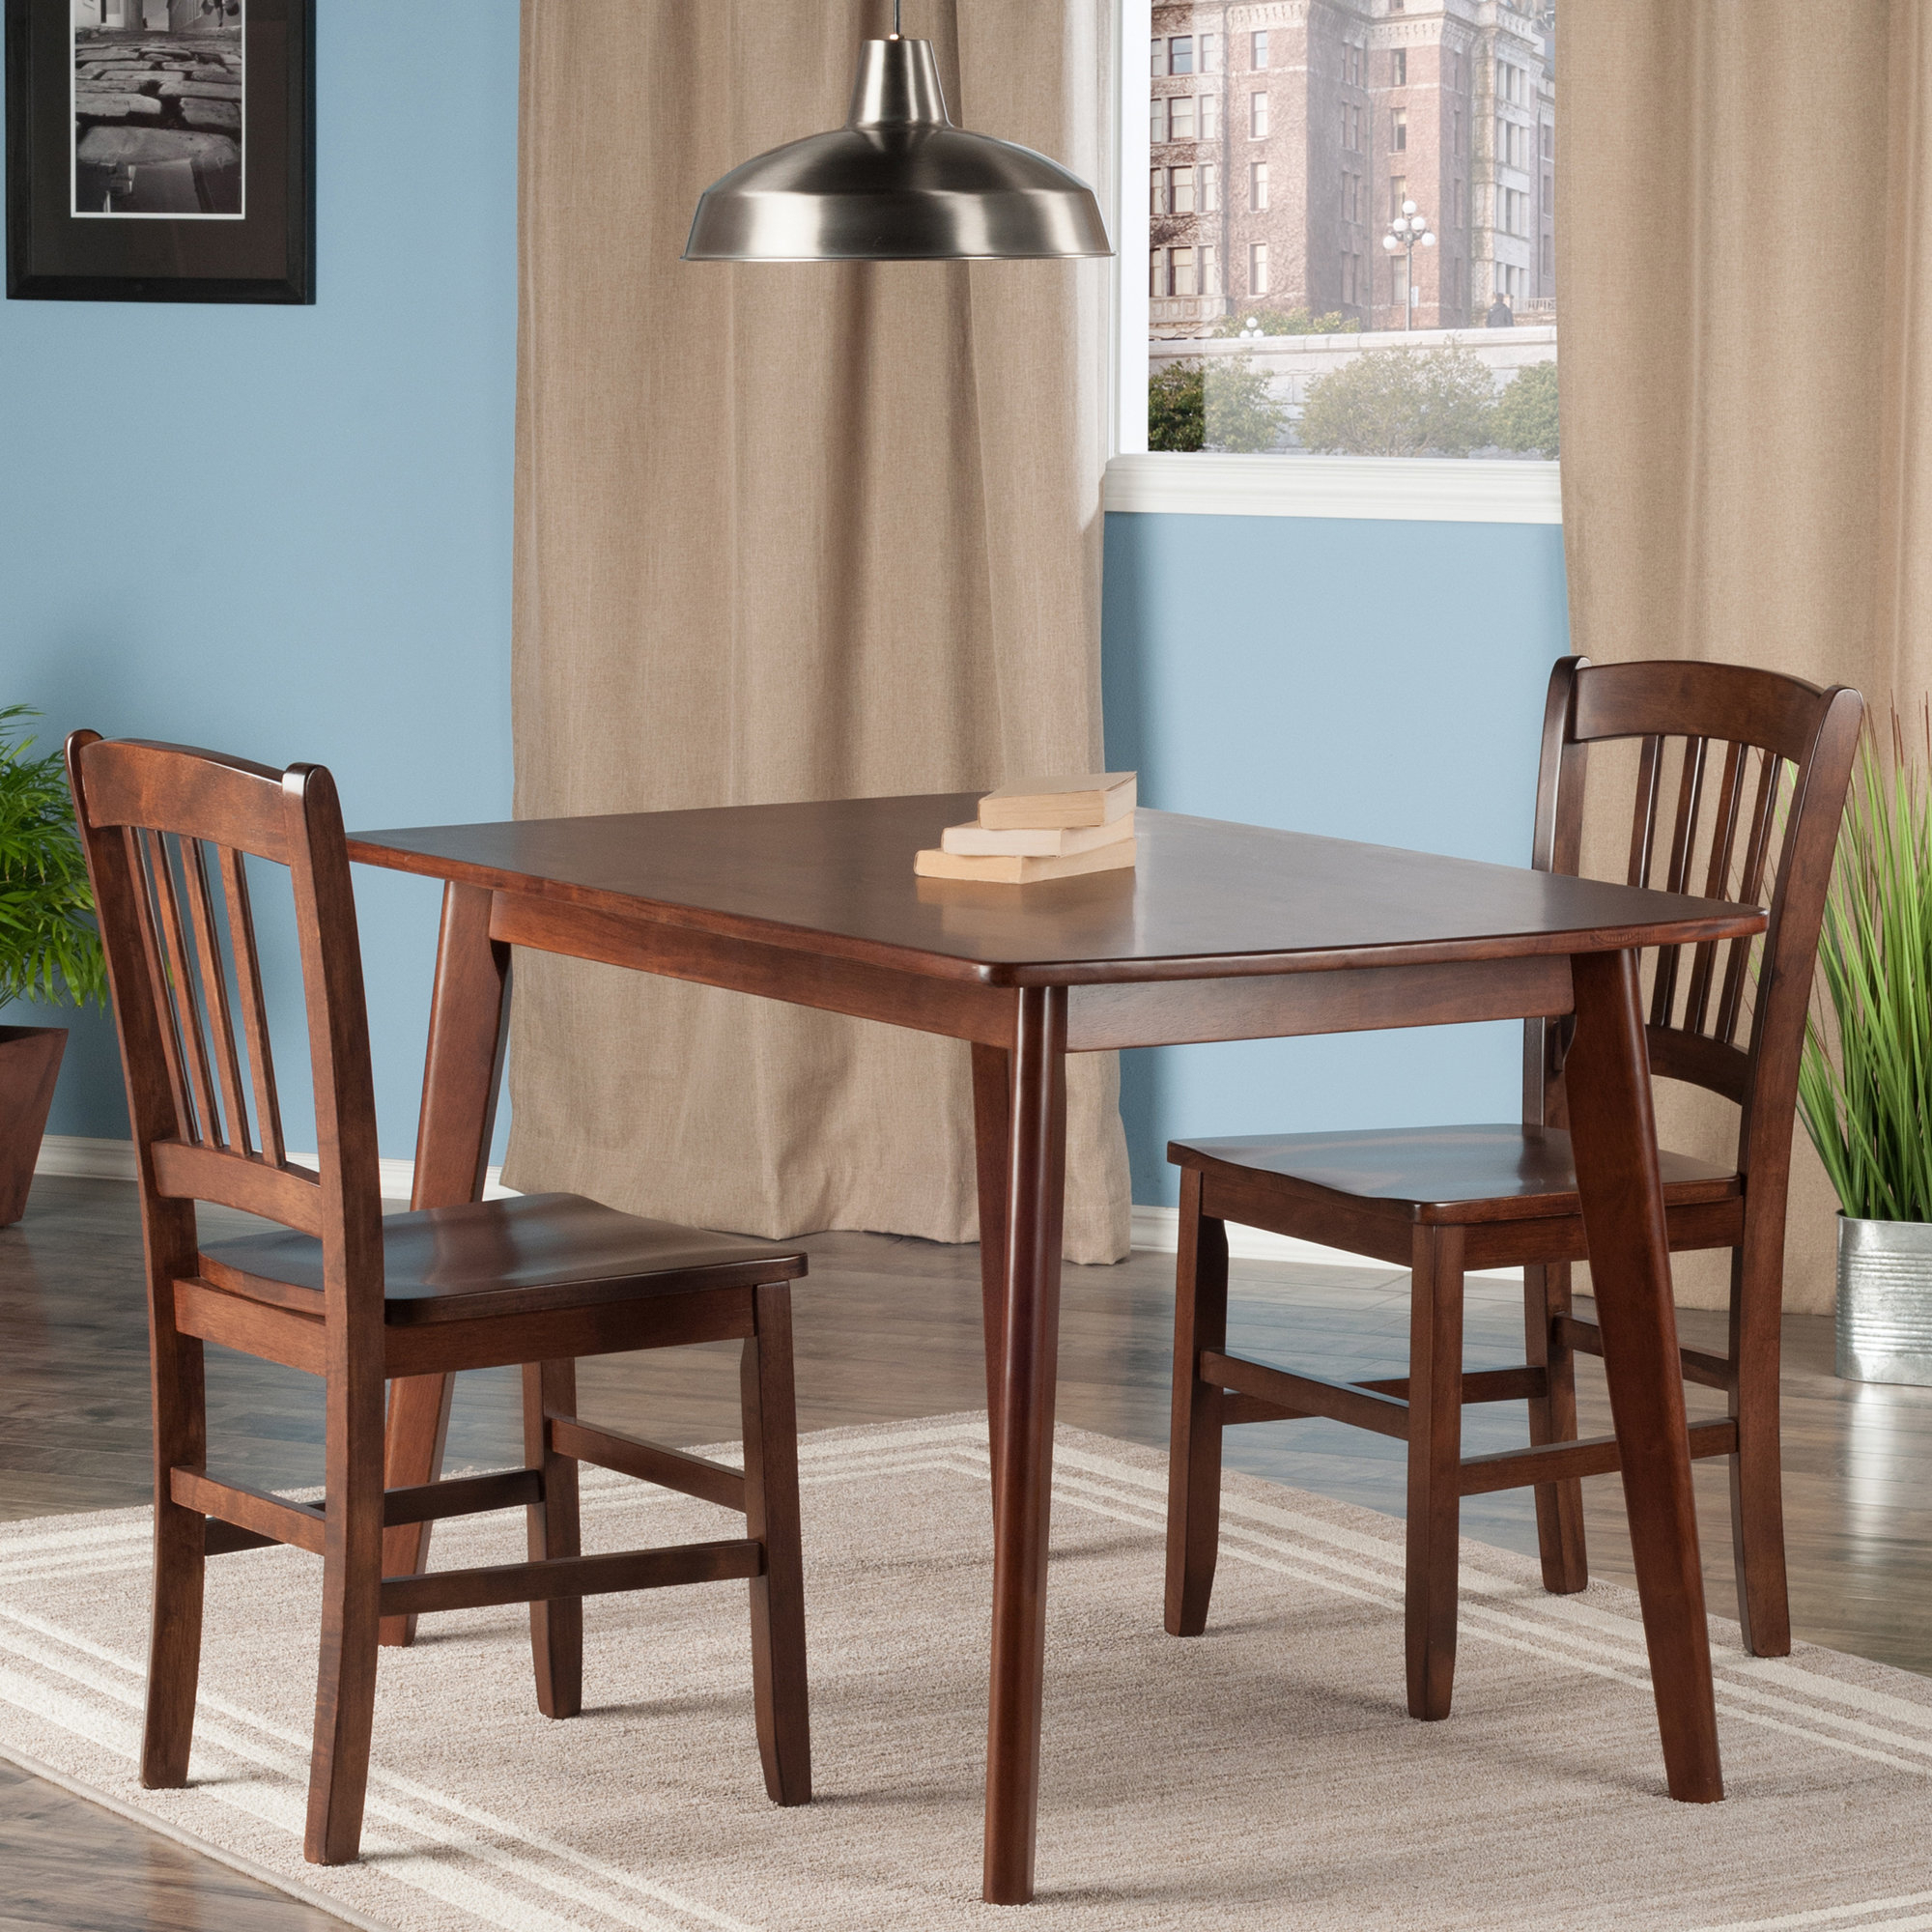 Details About Winston Porter Guynn 3 Piece Solid Wood Dining Set Wnst1156 Inside Current Yedinak 5 Piece Solid Wood Dining Sets (View 3 of 20)